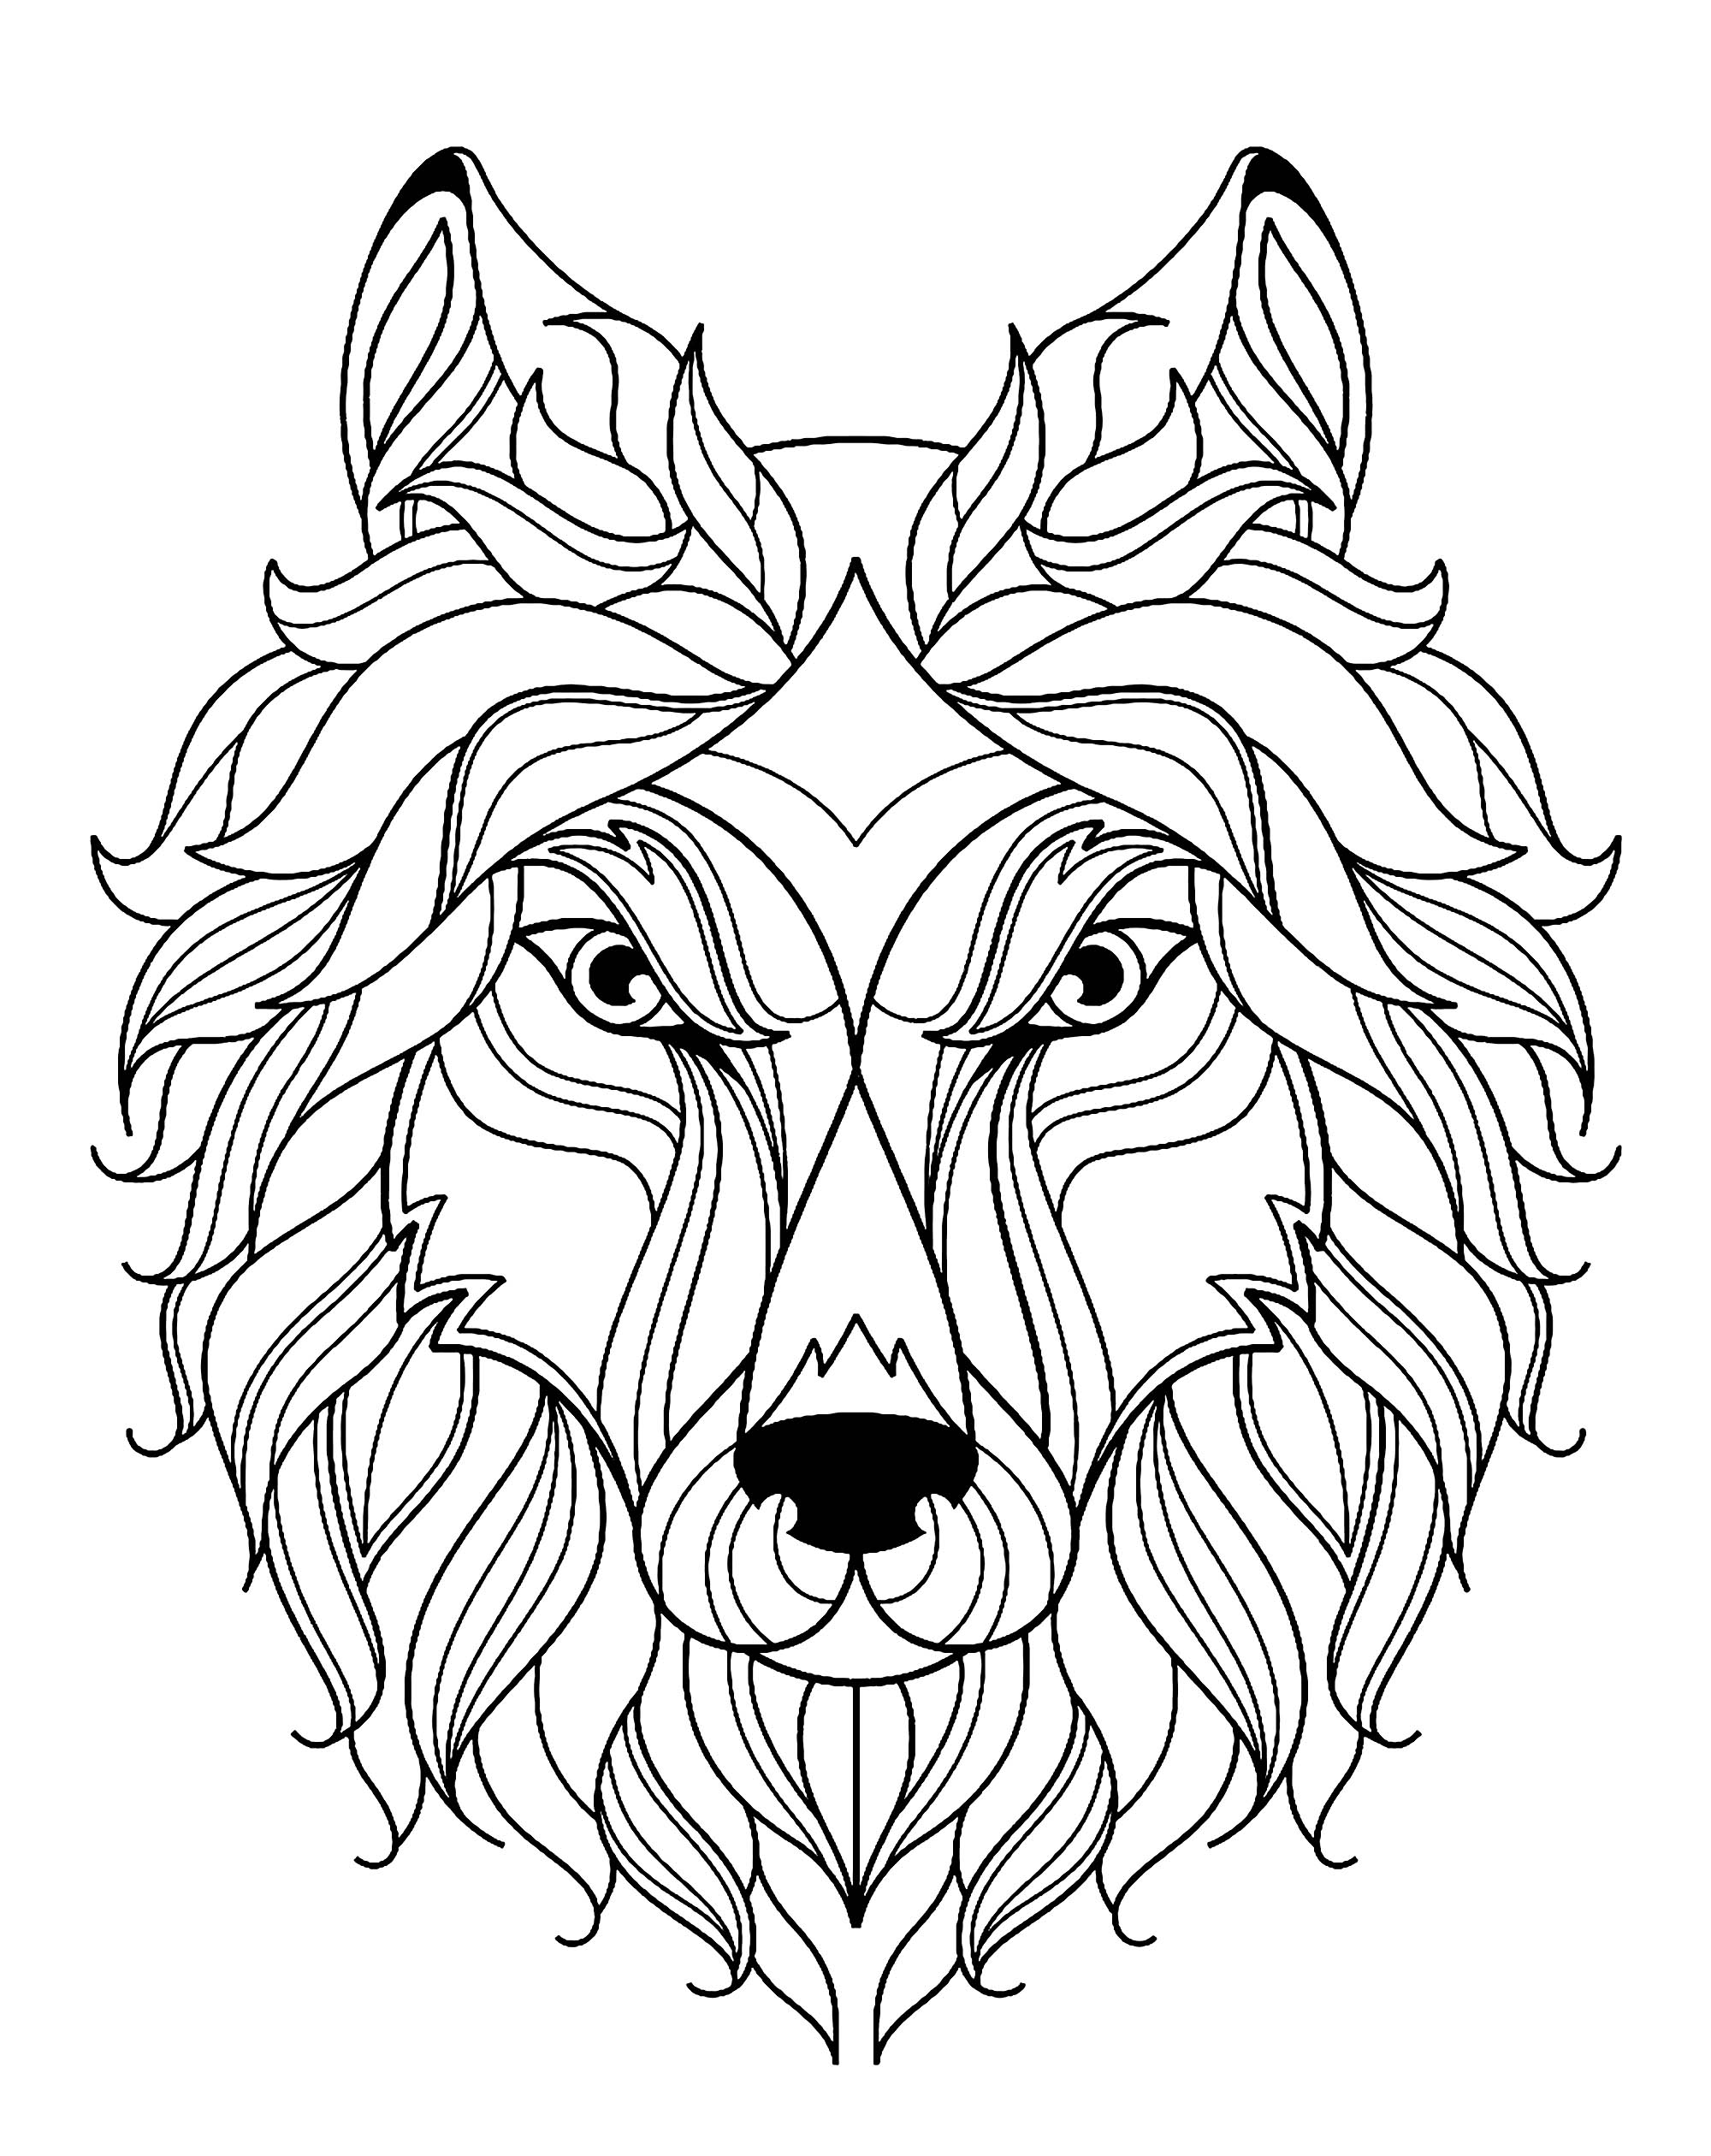 wolf coloring pages for adults free wolf coloring pages for adults printable to download adults coloring pages for wolf